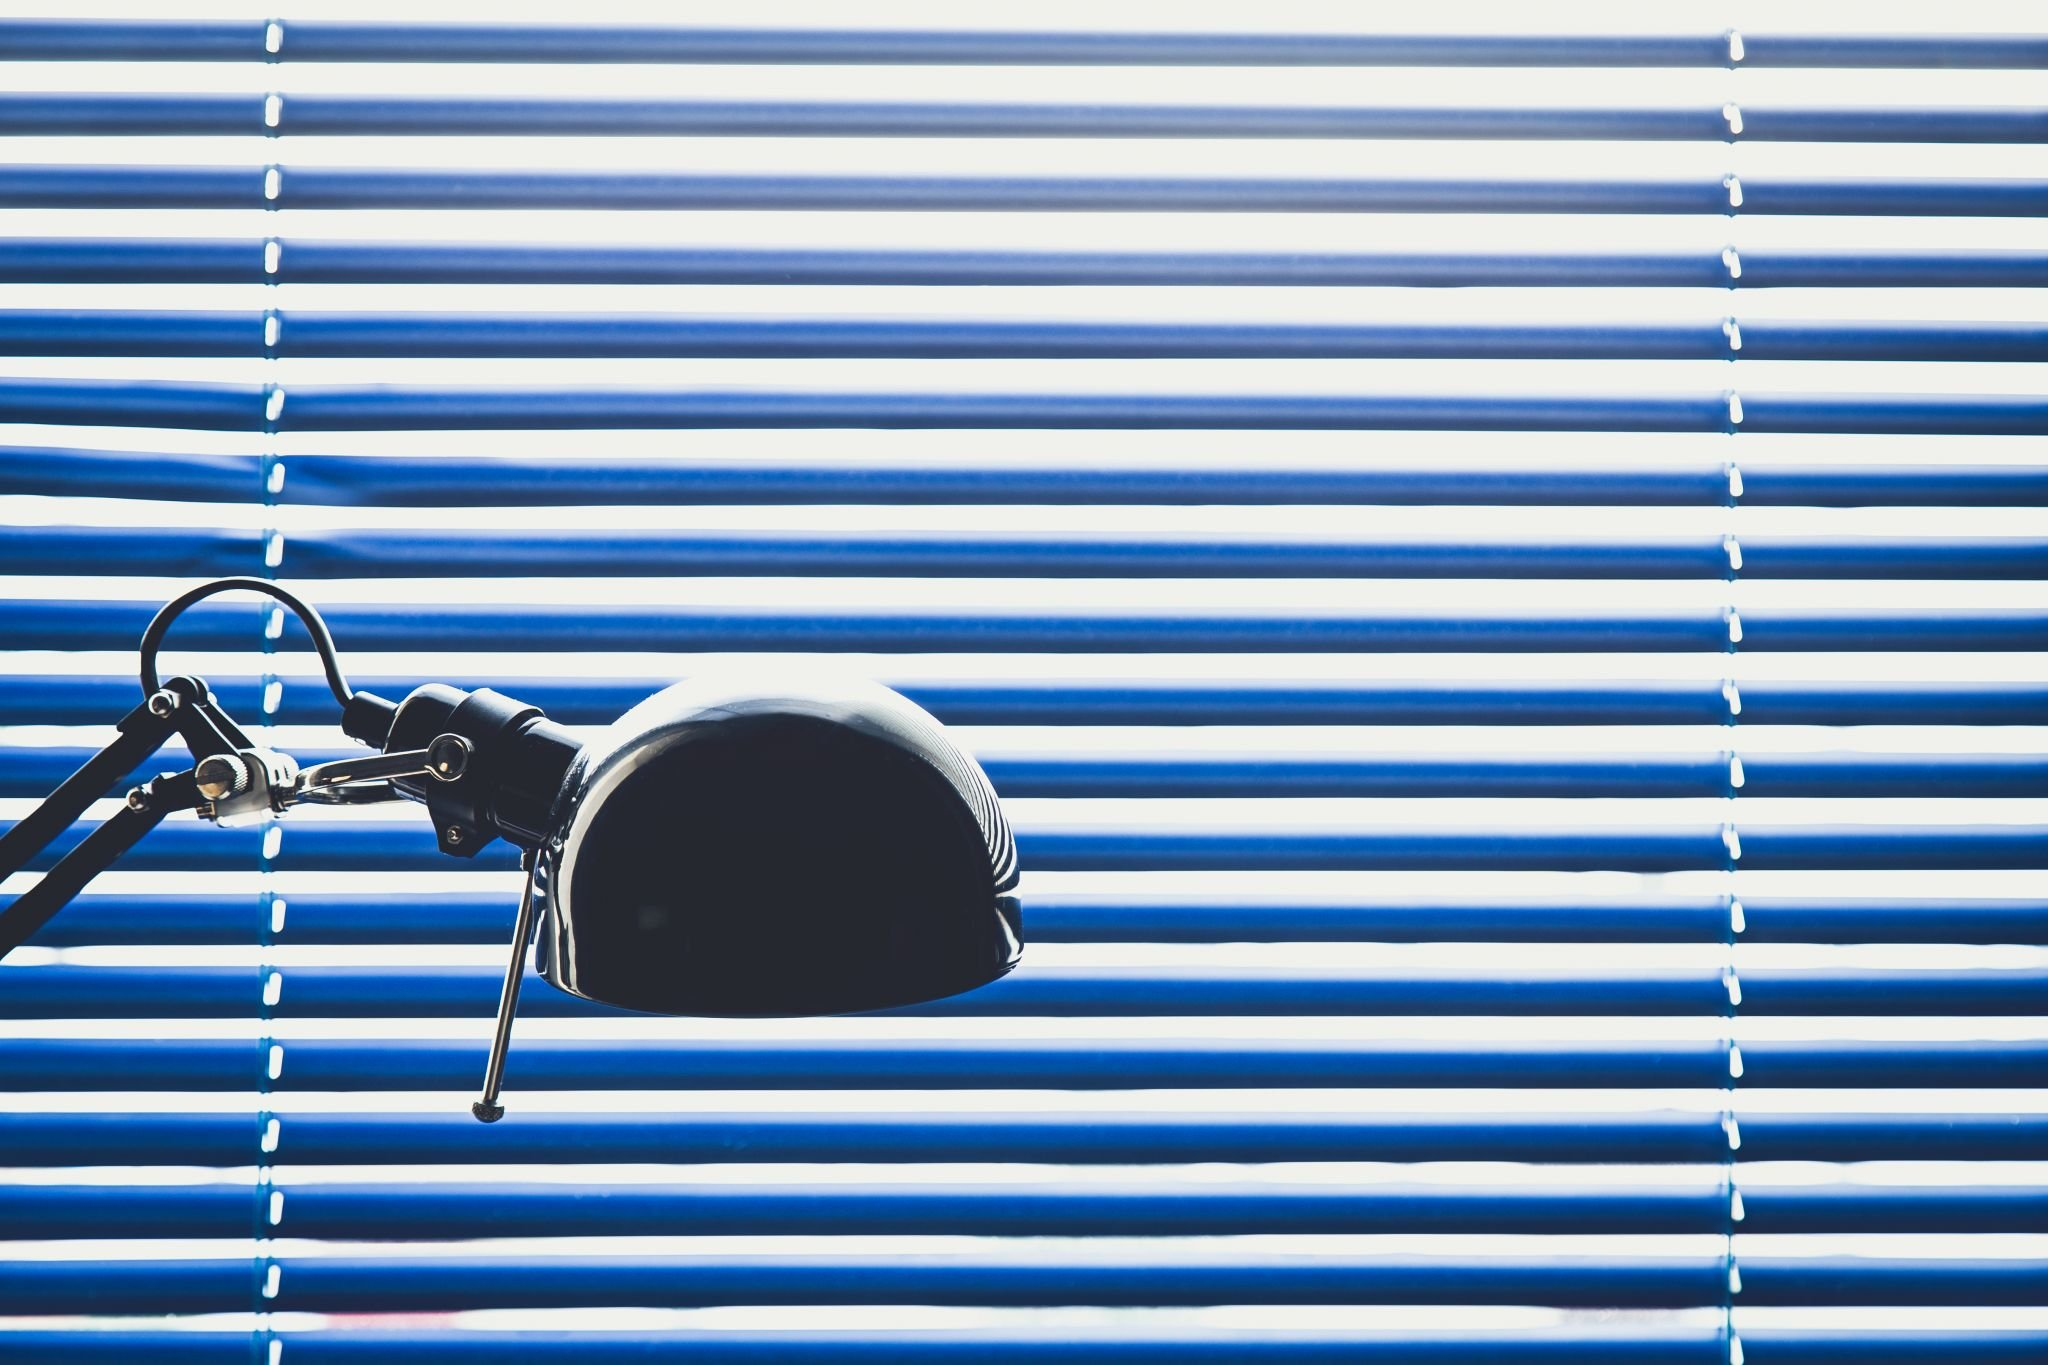 Desk light infront of blue venetian blind